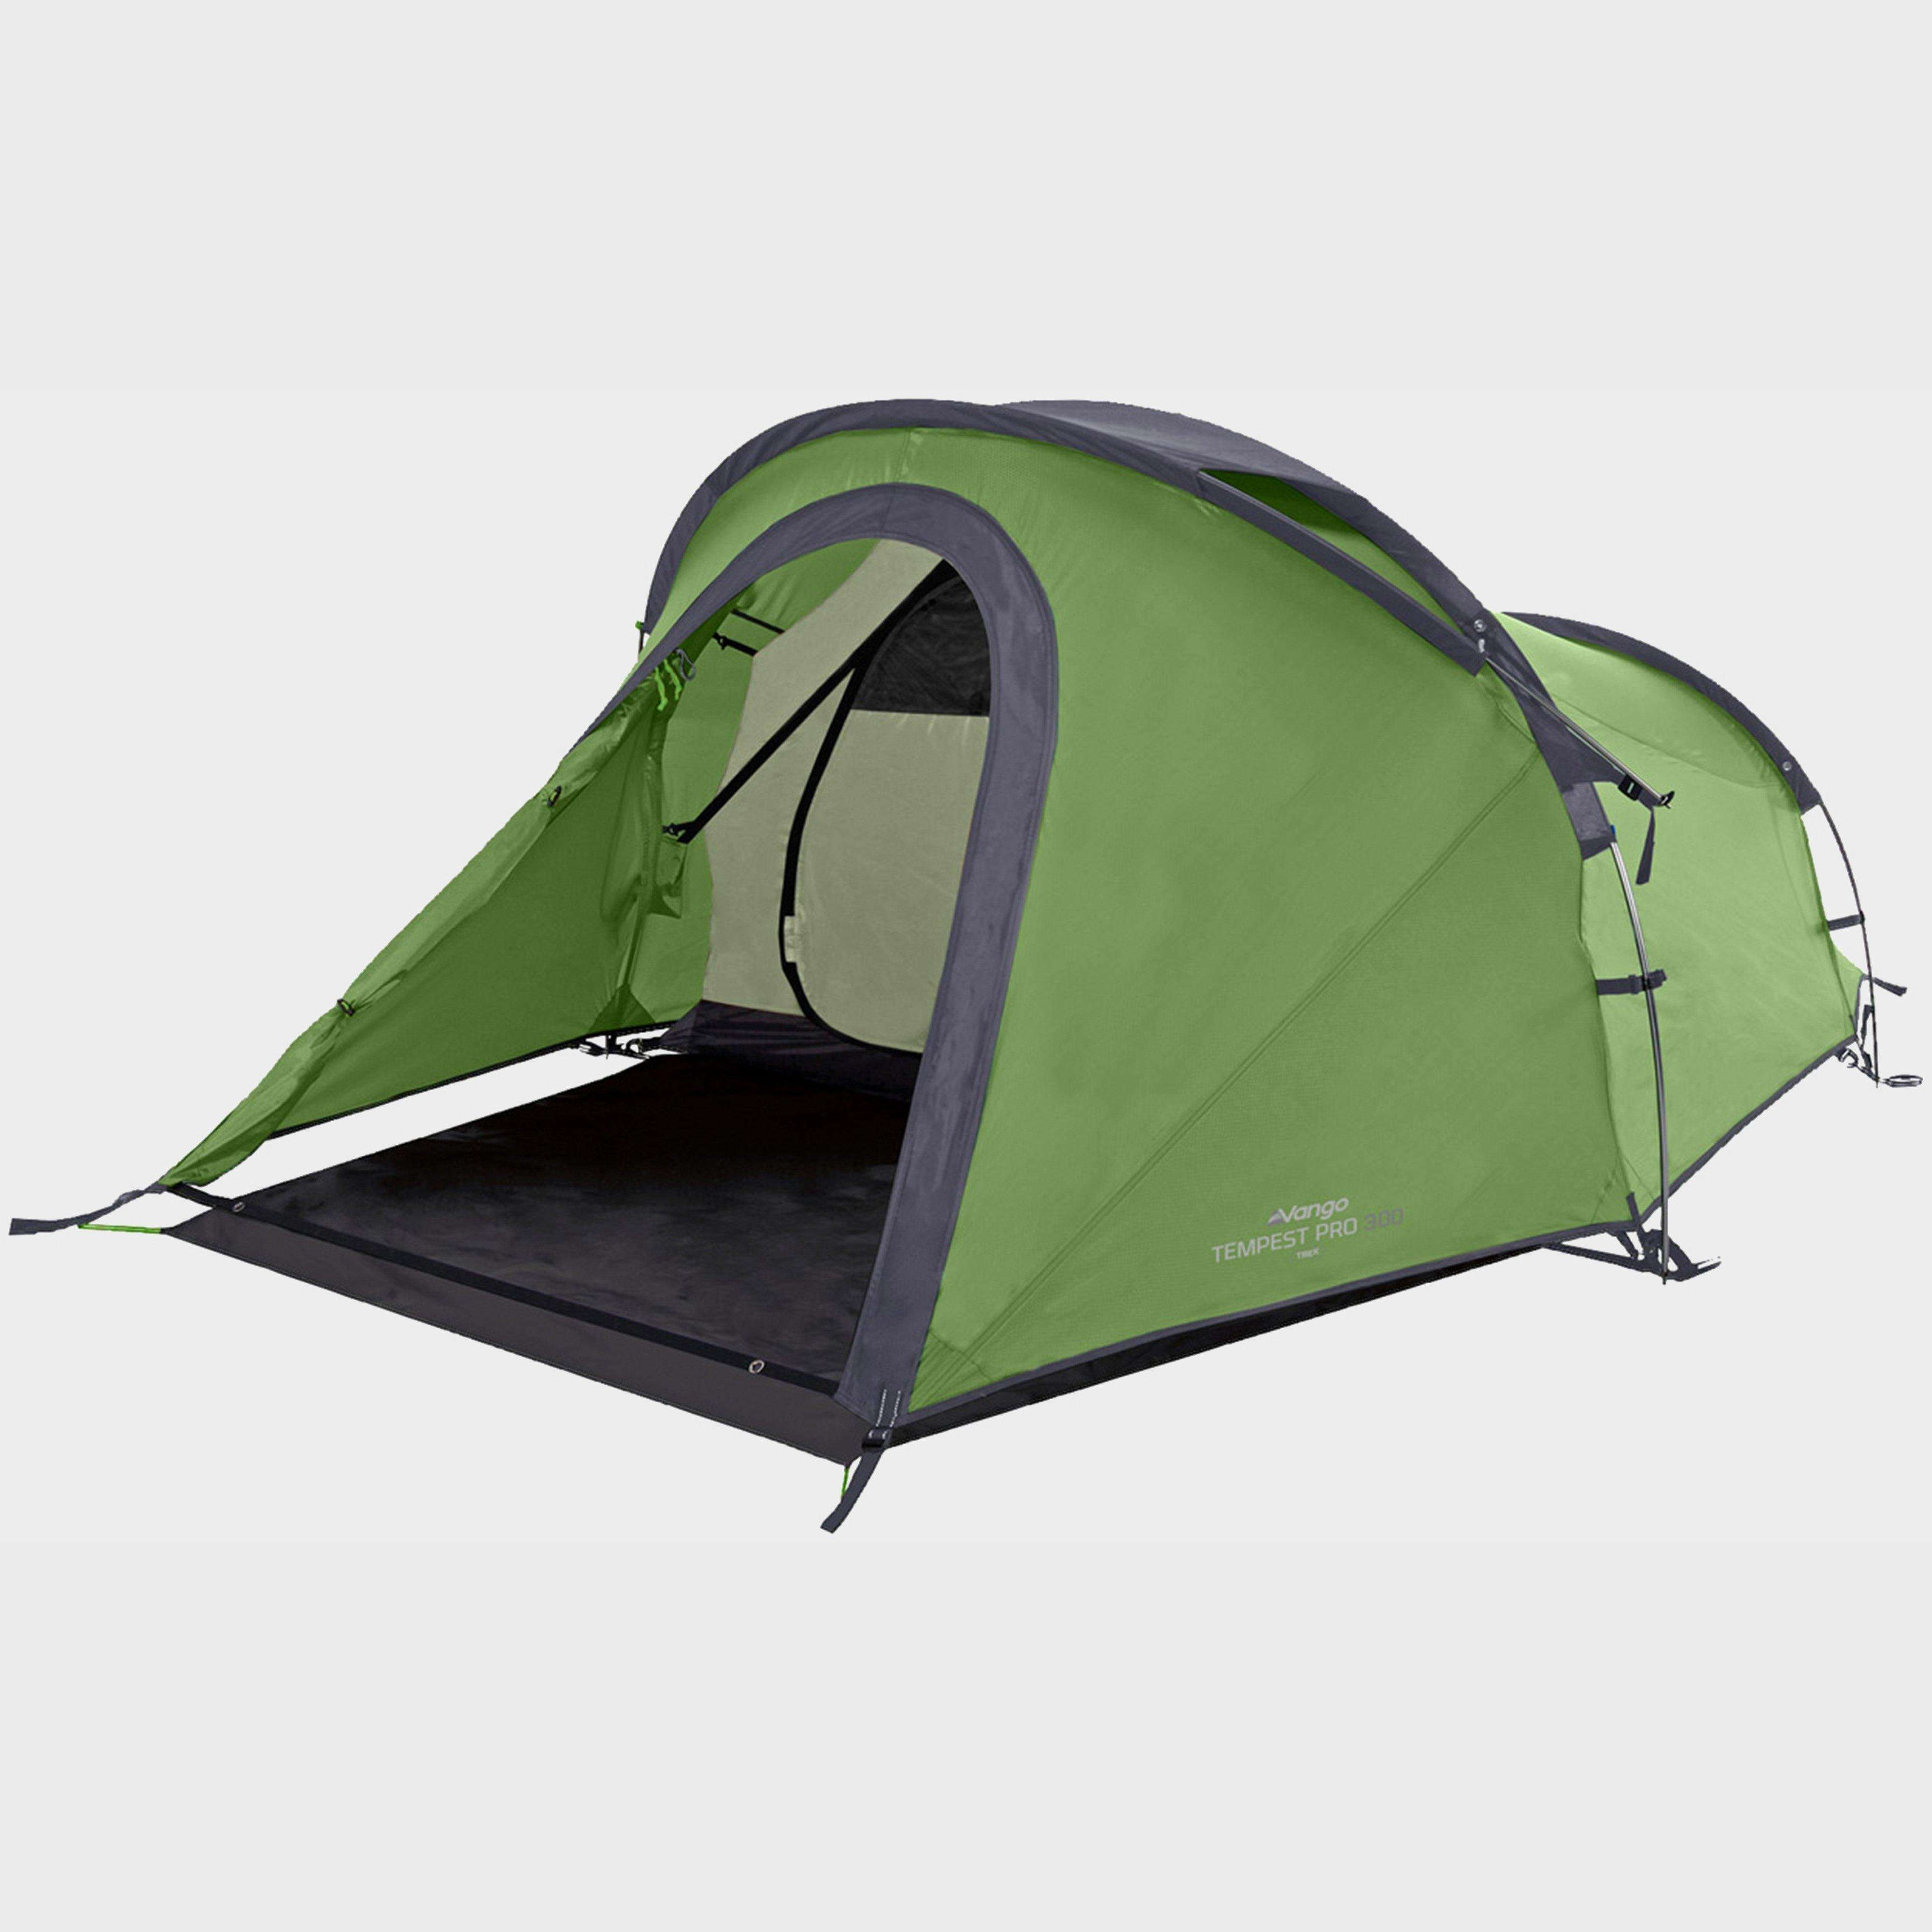 VANGO Tempest 300 Pro Backpacking Tent